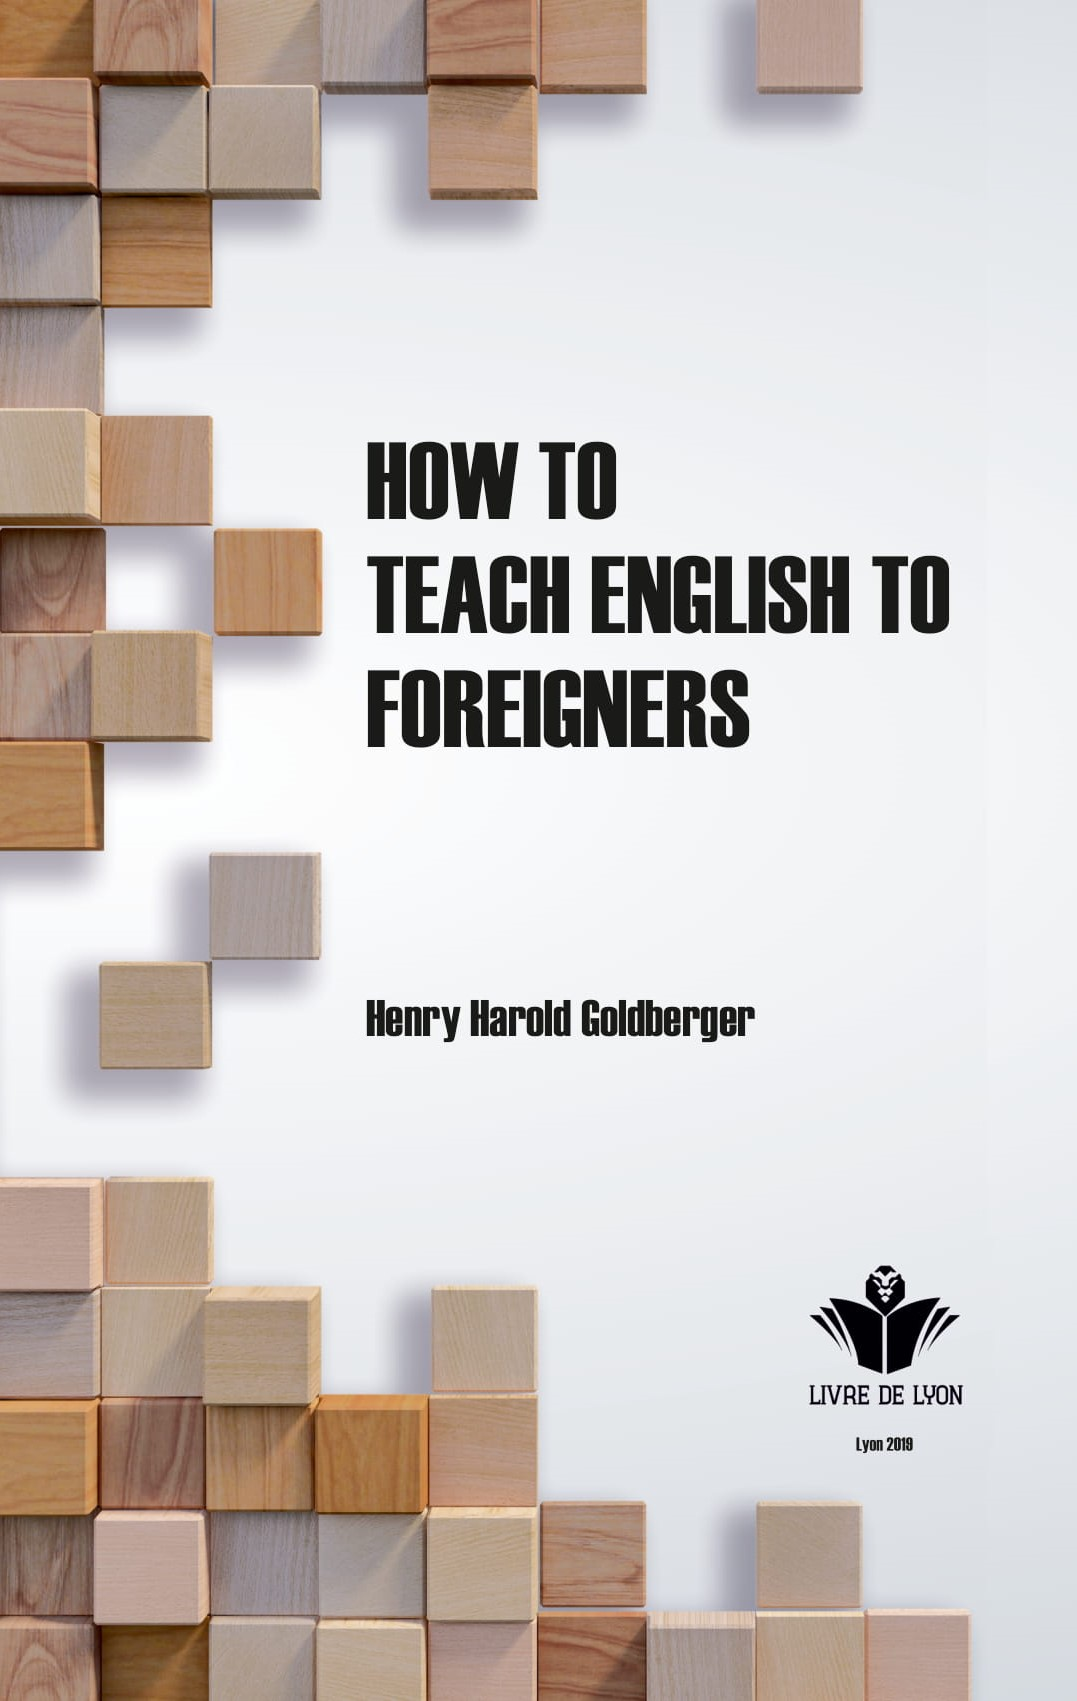 How to Teach English to Foreigners